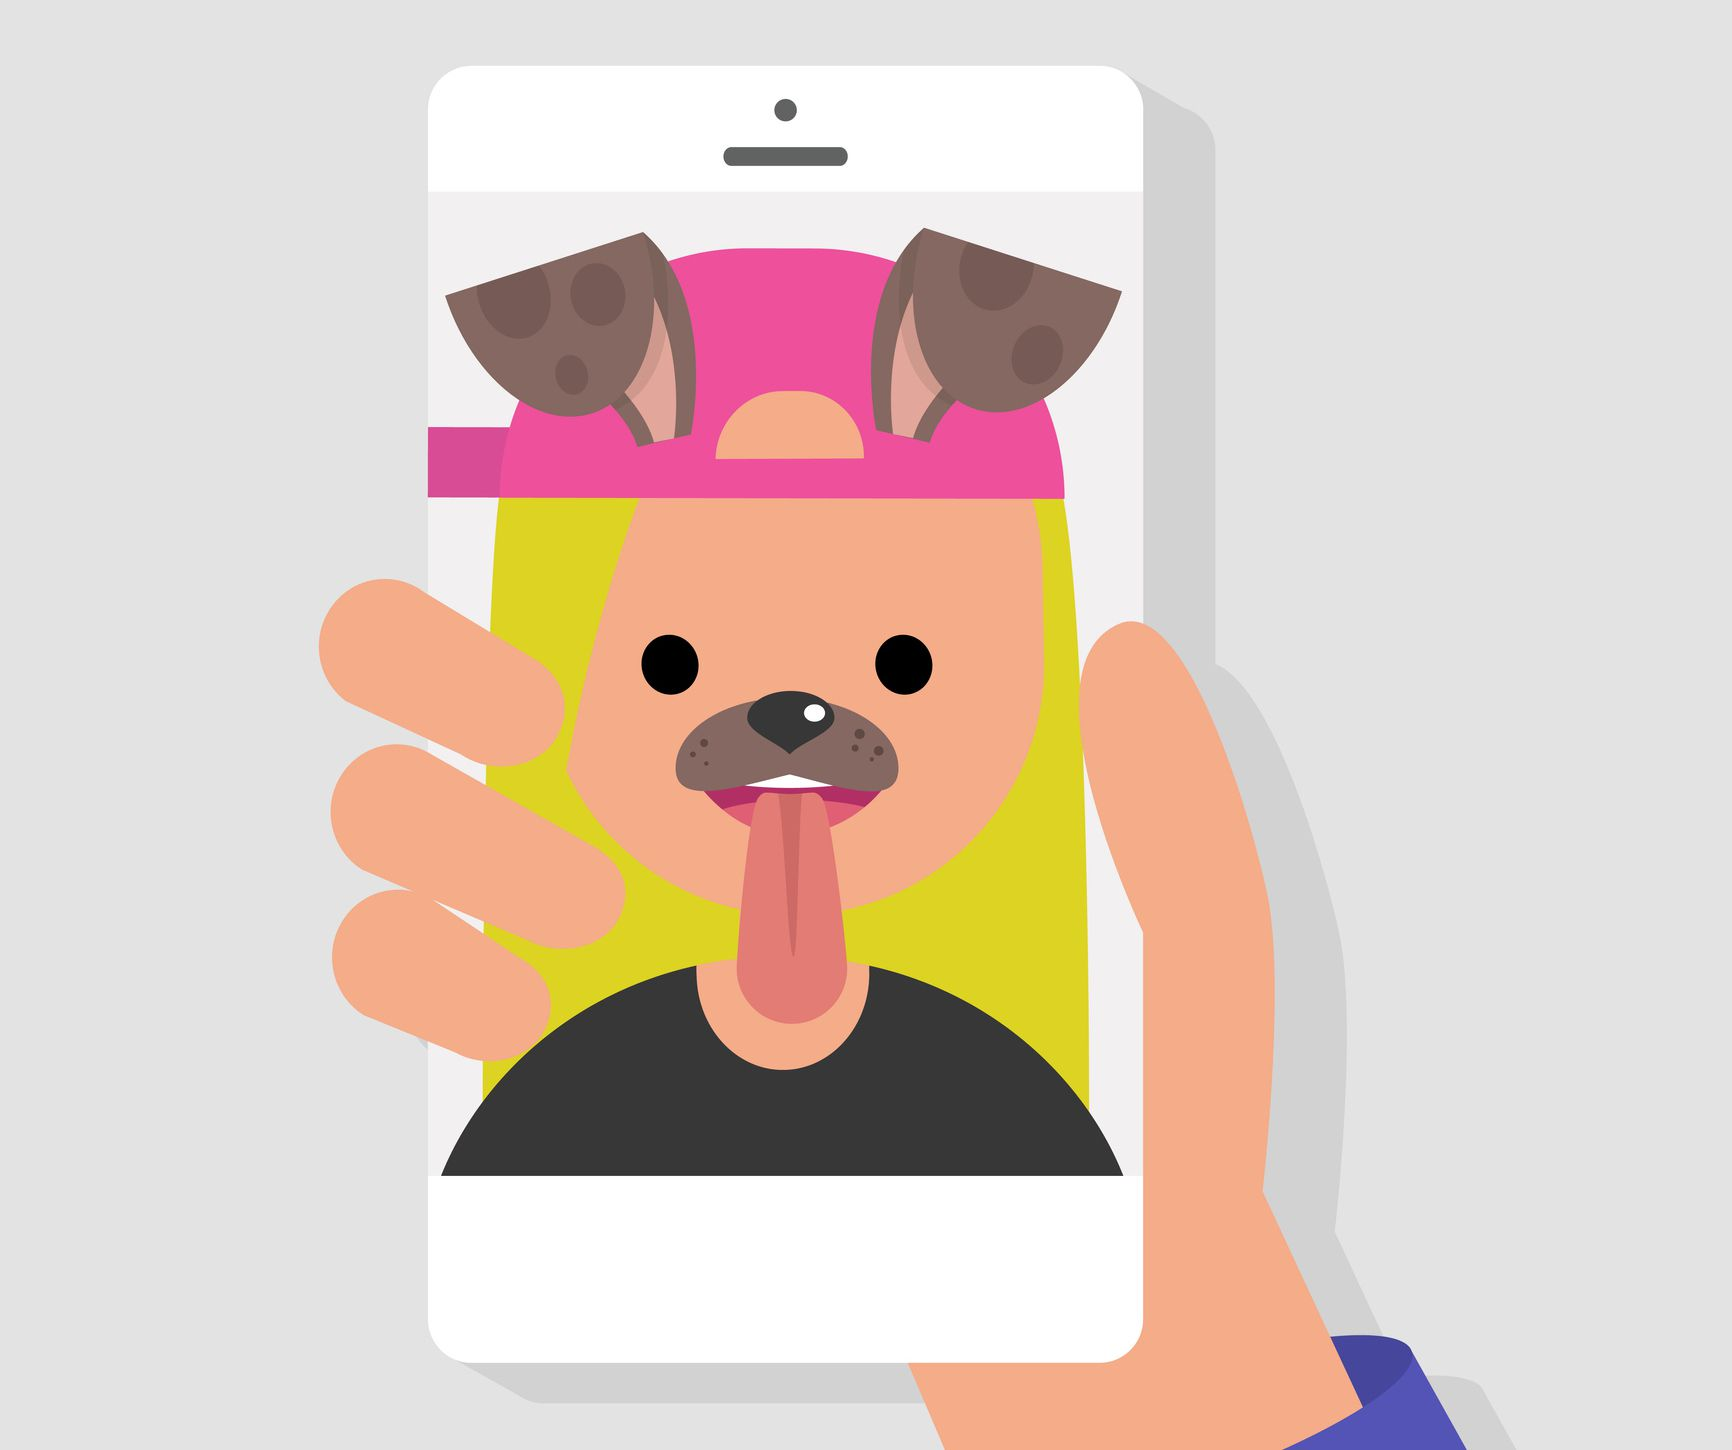 A dog filter on a woman's selfie.